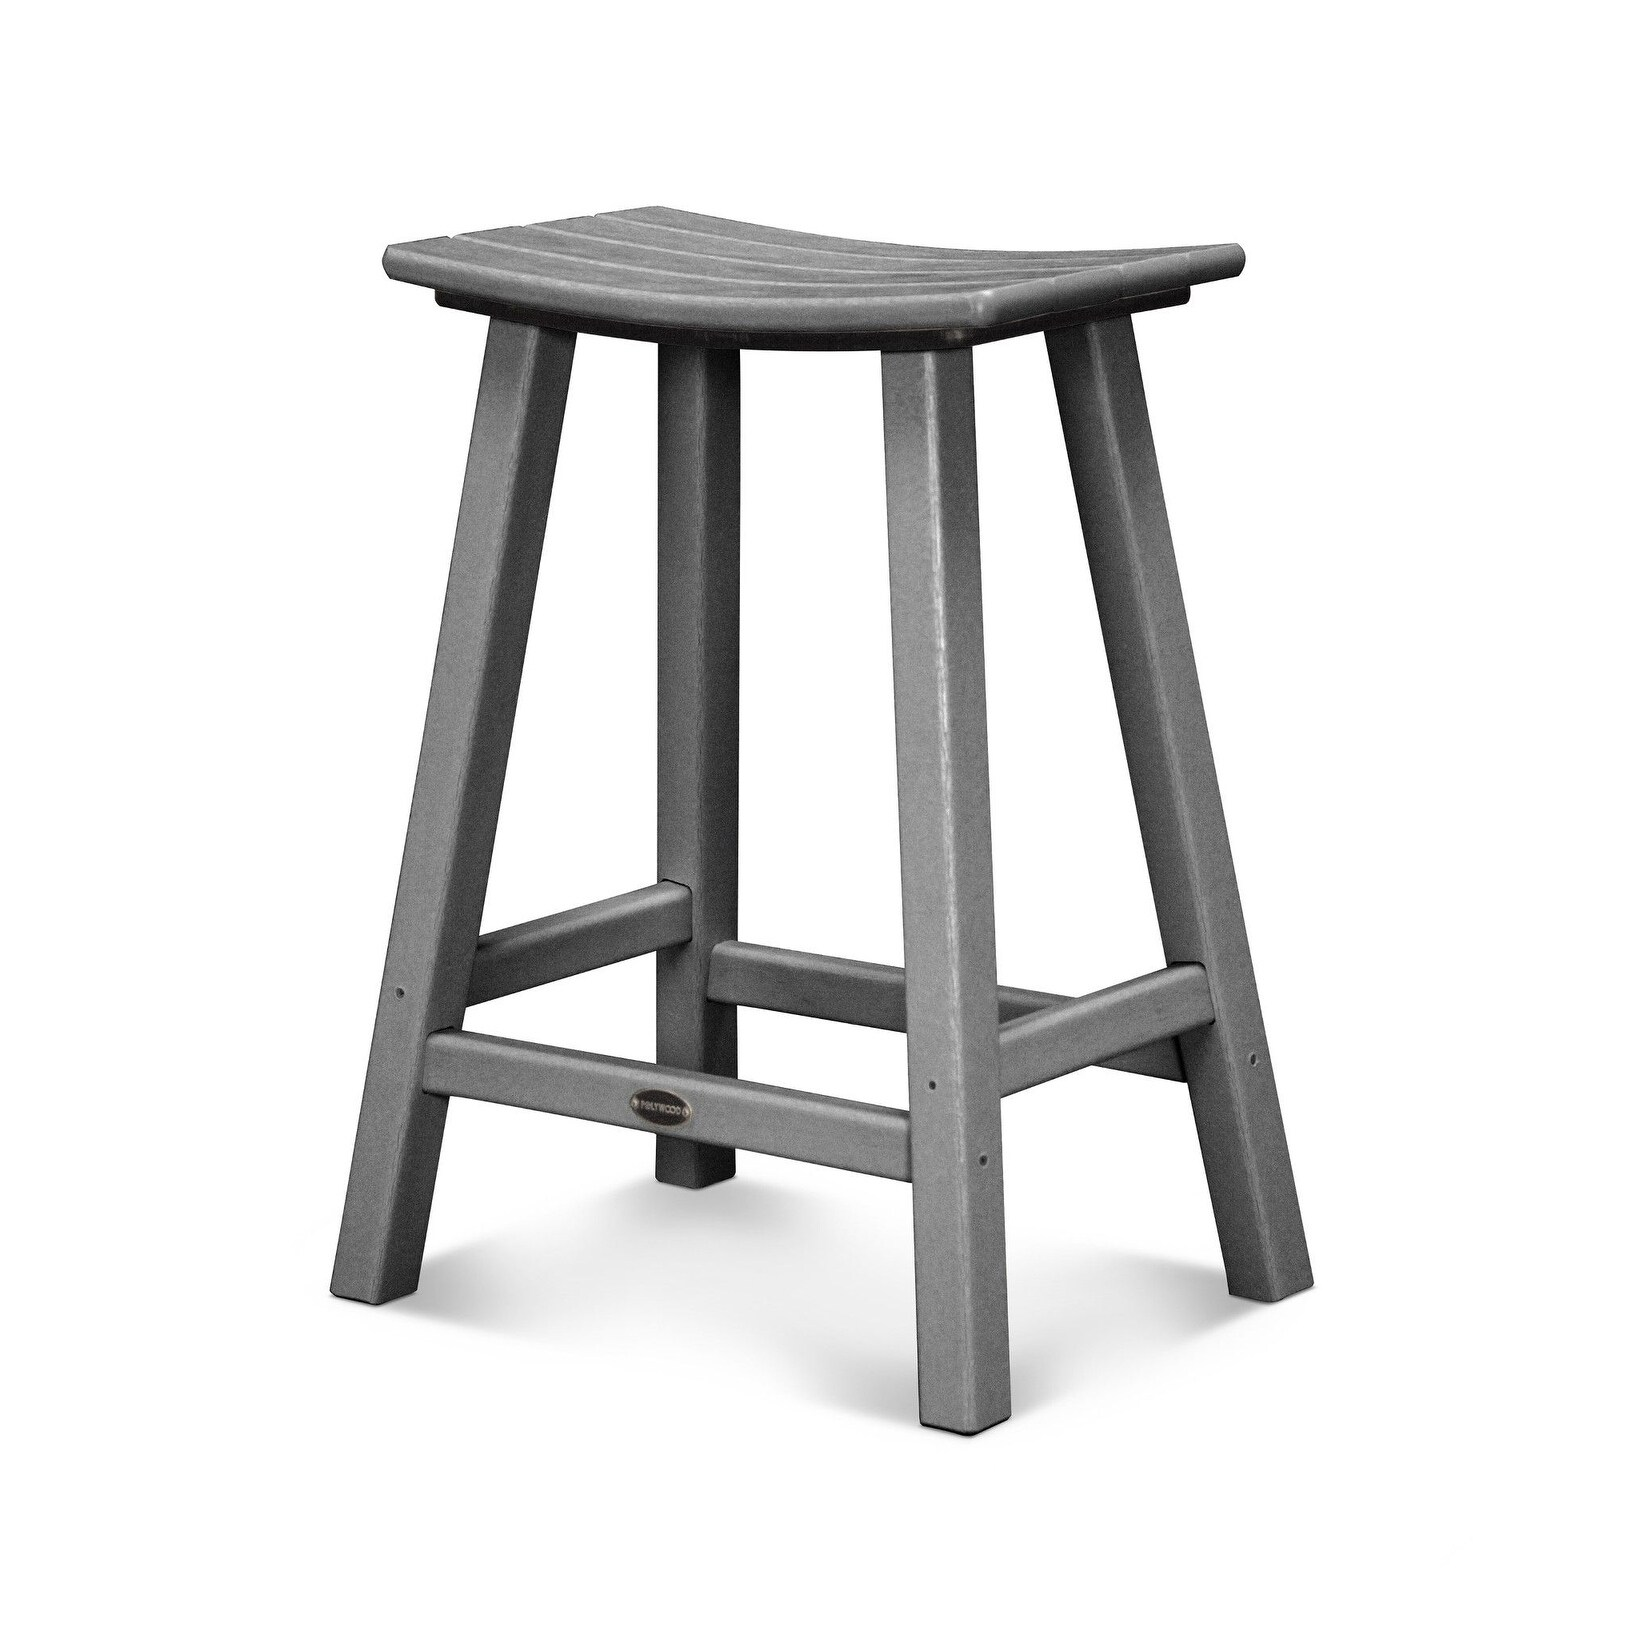 Shop Polywood Traditional 24 Inch Outdoor Saddle Bar Stool Free